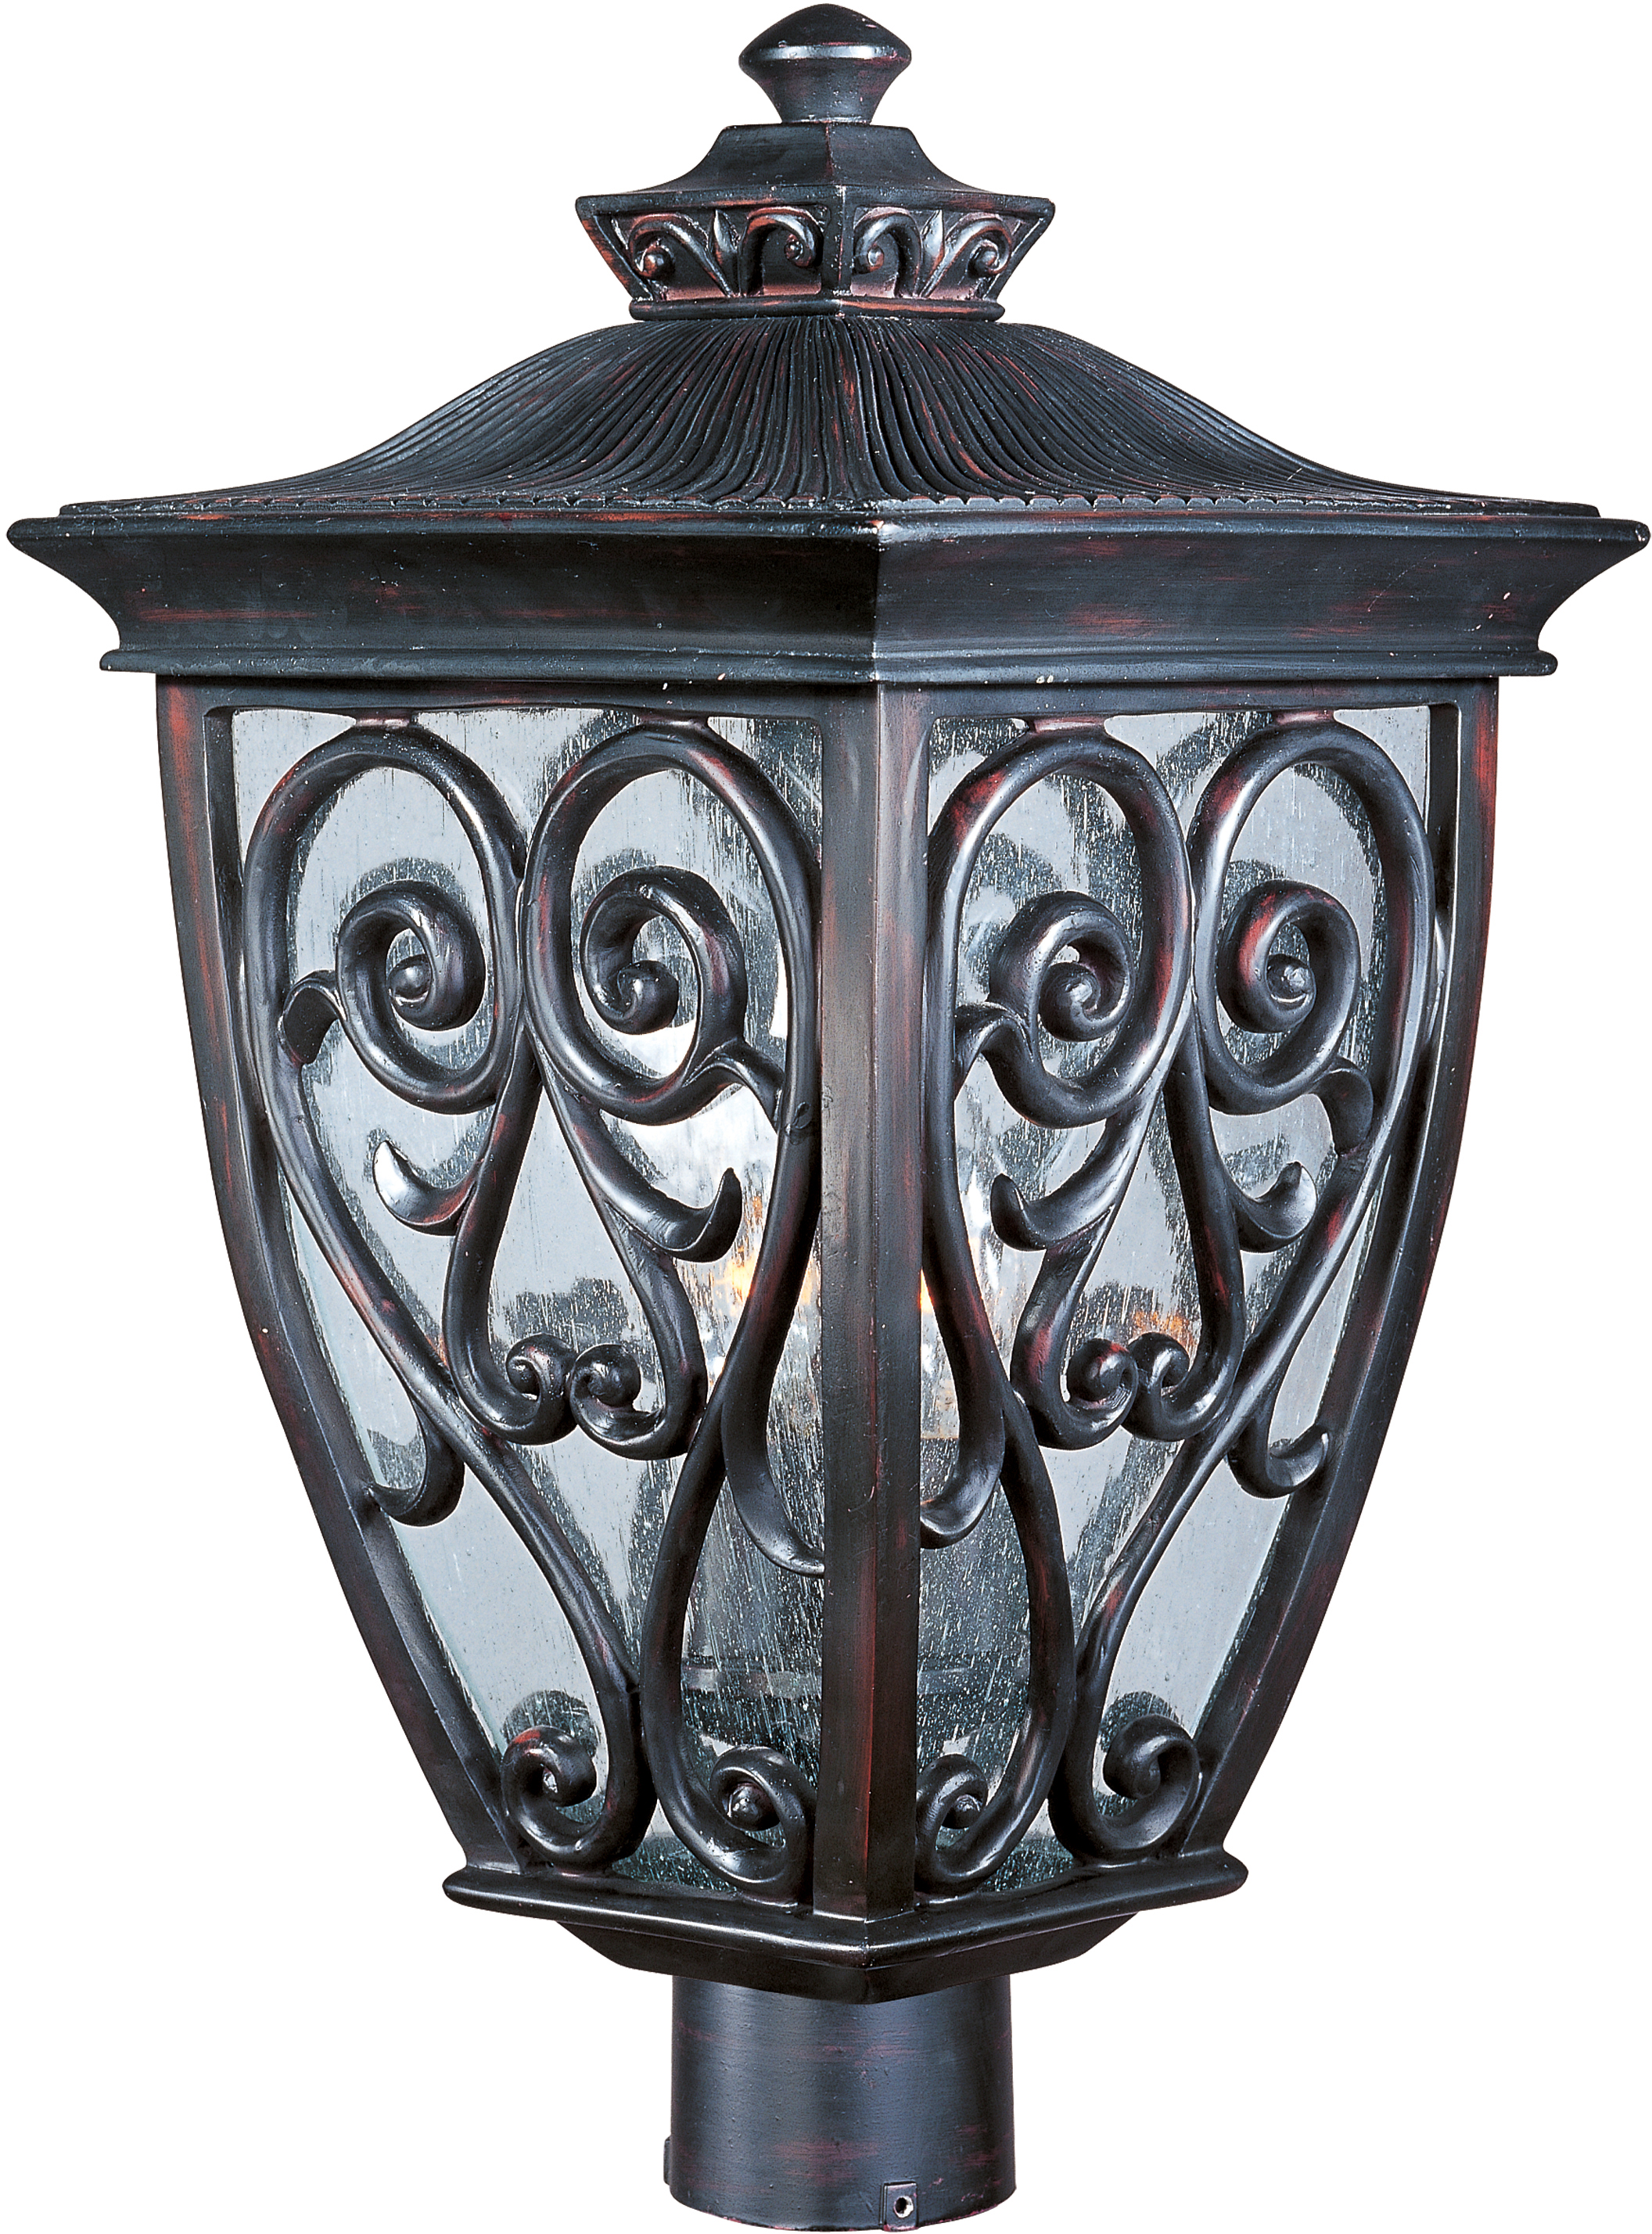 Newbury vx 3 light outdoor polepost lantern outdoor polepost newbury vx aloadofball Gallery